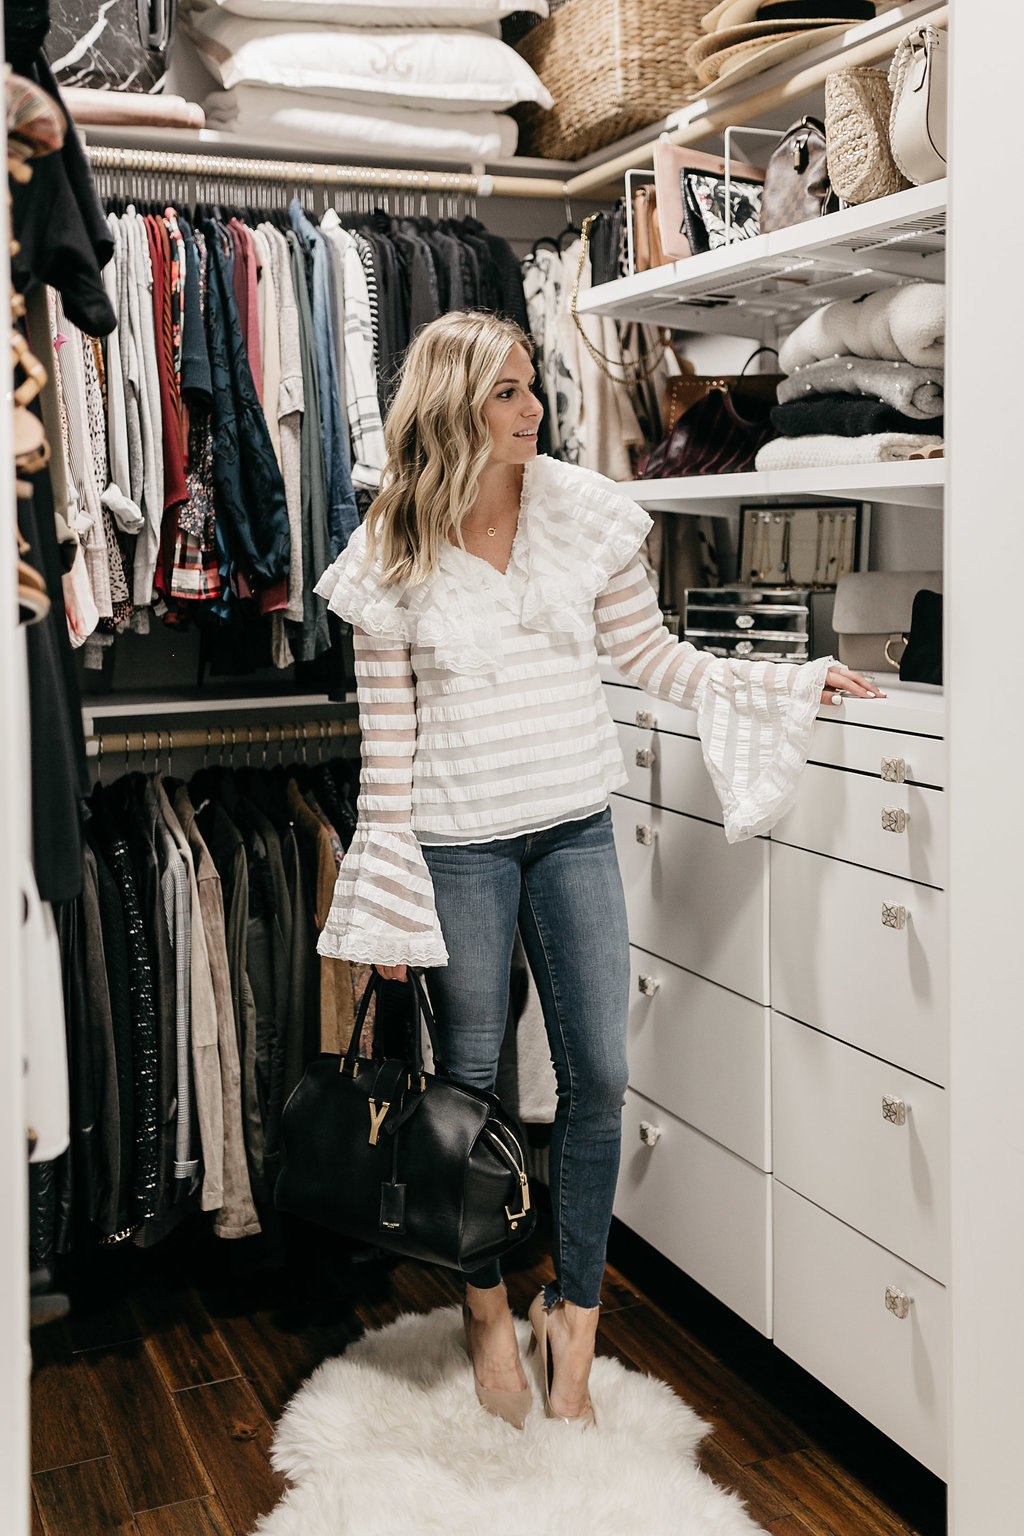 woman wearing white top and jeans with CLOSET ORGANIZATION REVEAL